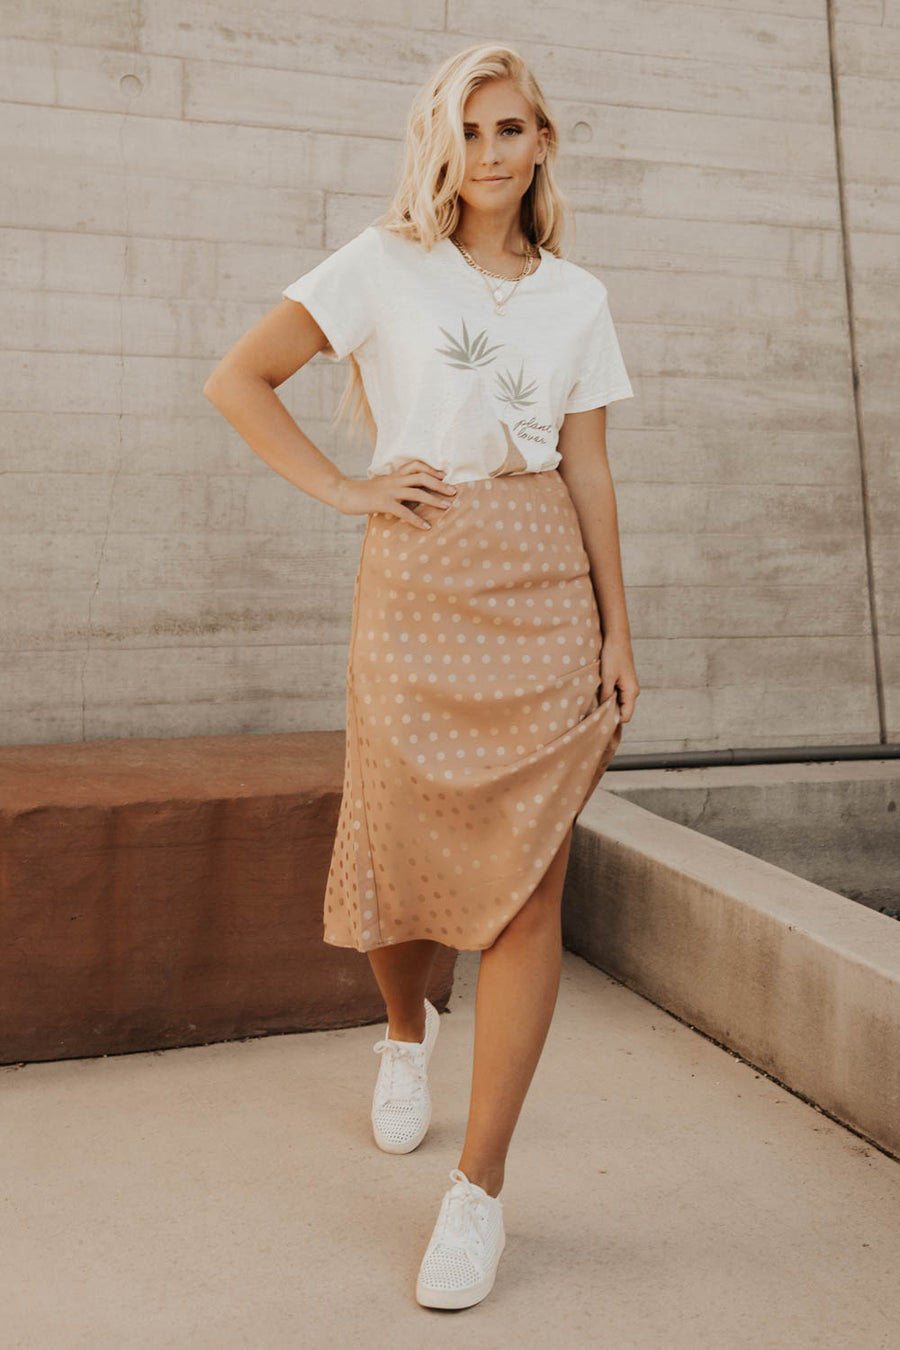 Polka Dot Satin Midi Skirt - FINAL SALE